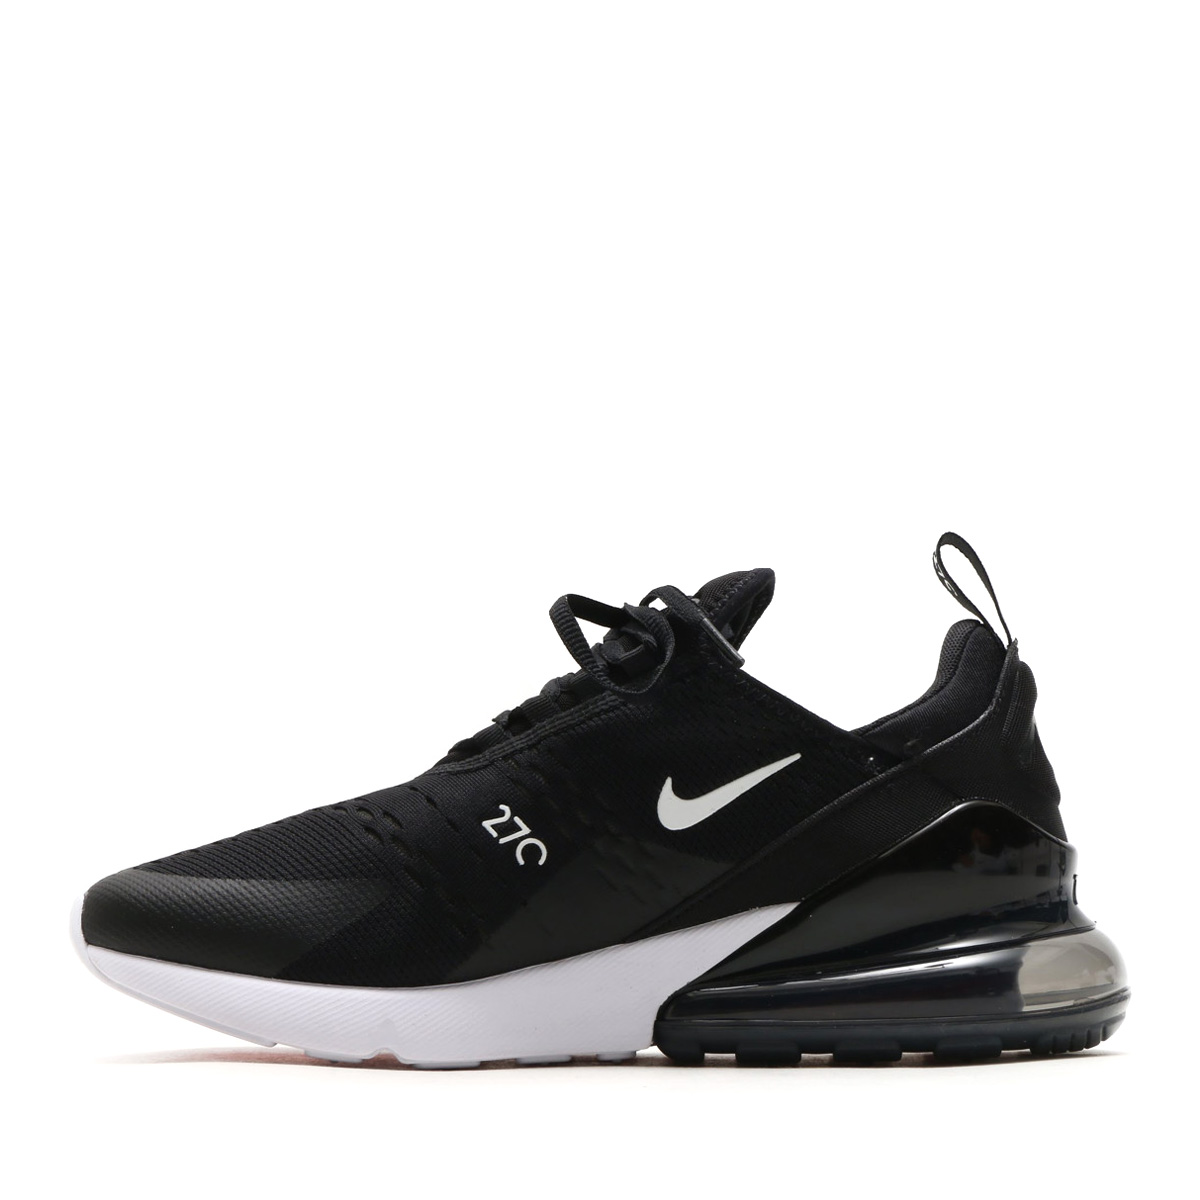 78f5361a42a5 NIKE AIR MAX 270 (Kie Ney AMAX 270) (BLACK ANTHRACITE-WHITE-SOLAR RED) 18SP- S